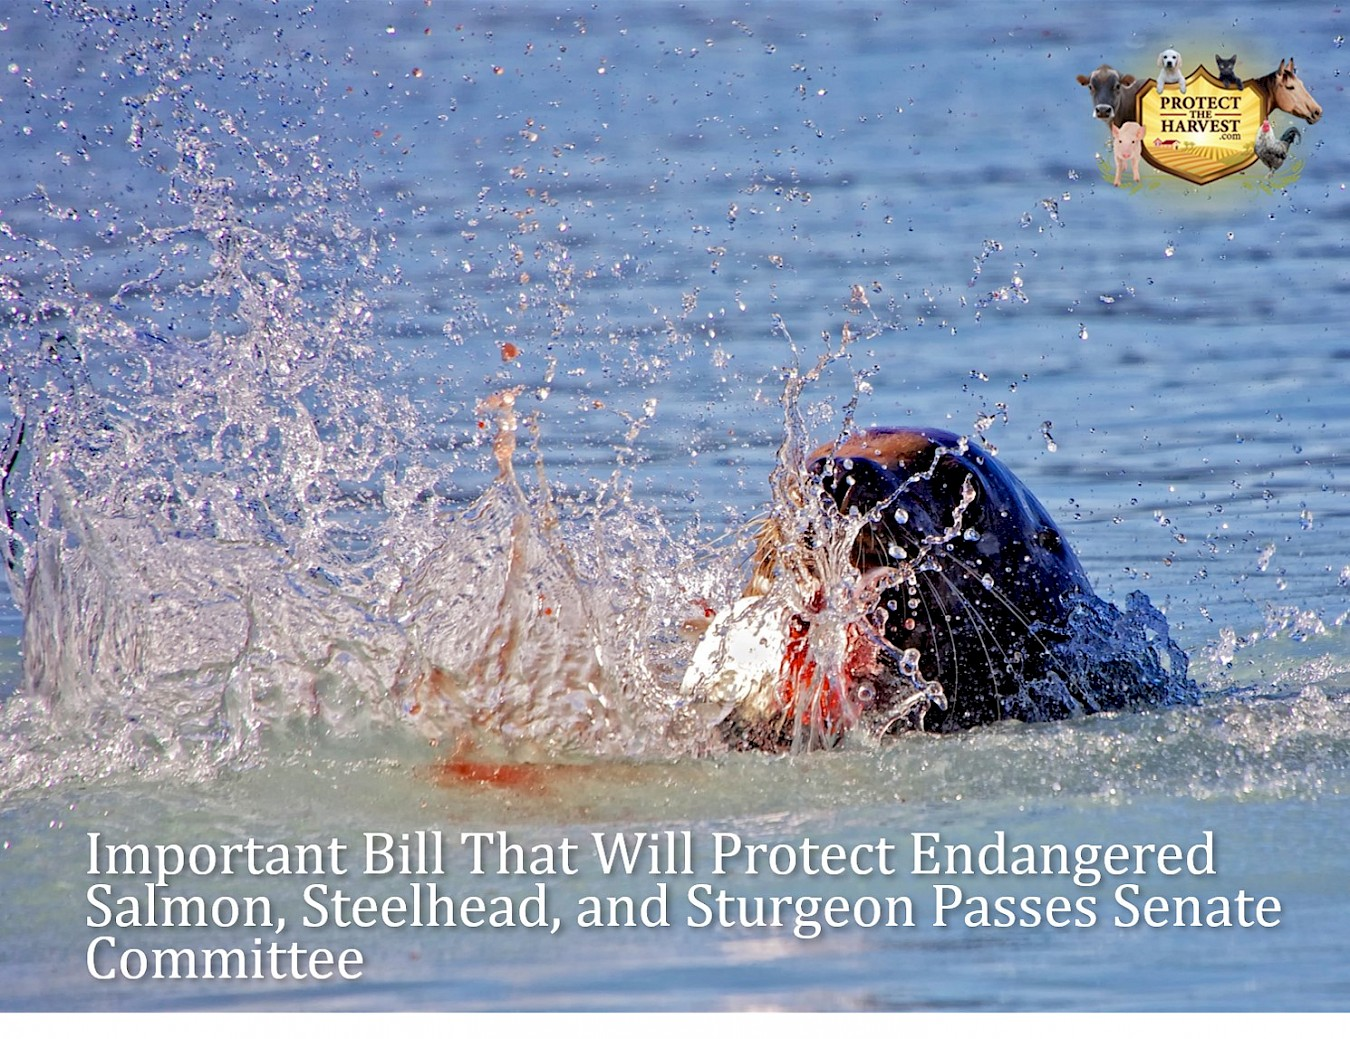 Important Bill That Will Protect Endangered Salmon, Steelhead, And Sturgeon Passes Senate Committee